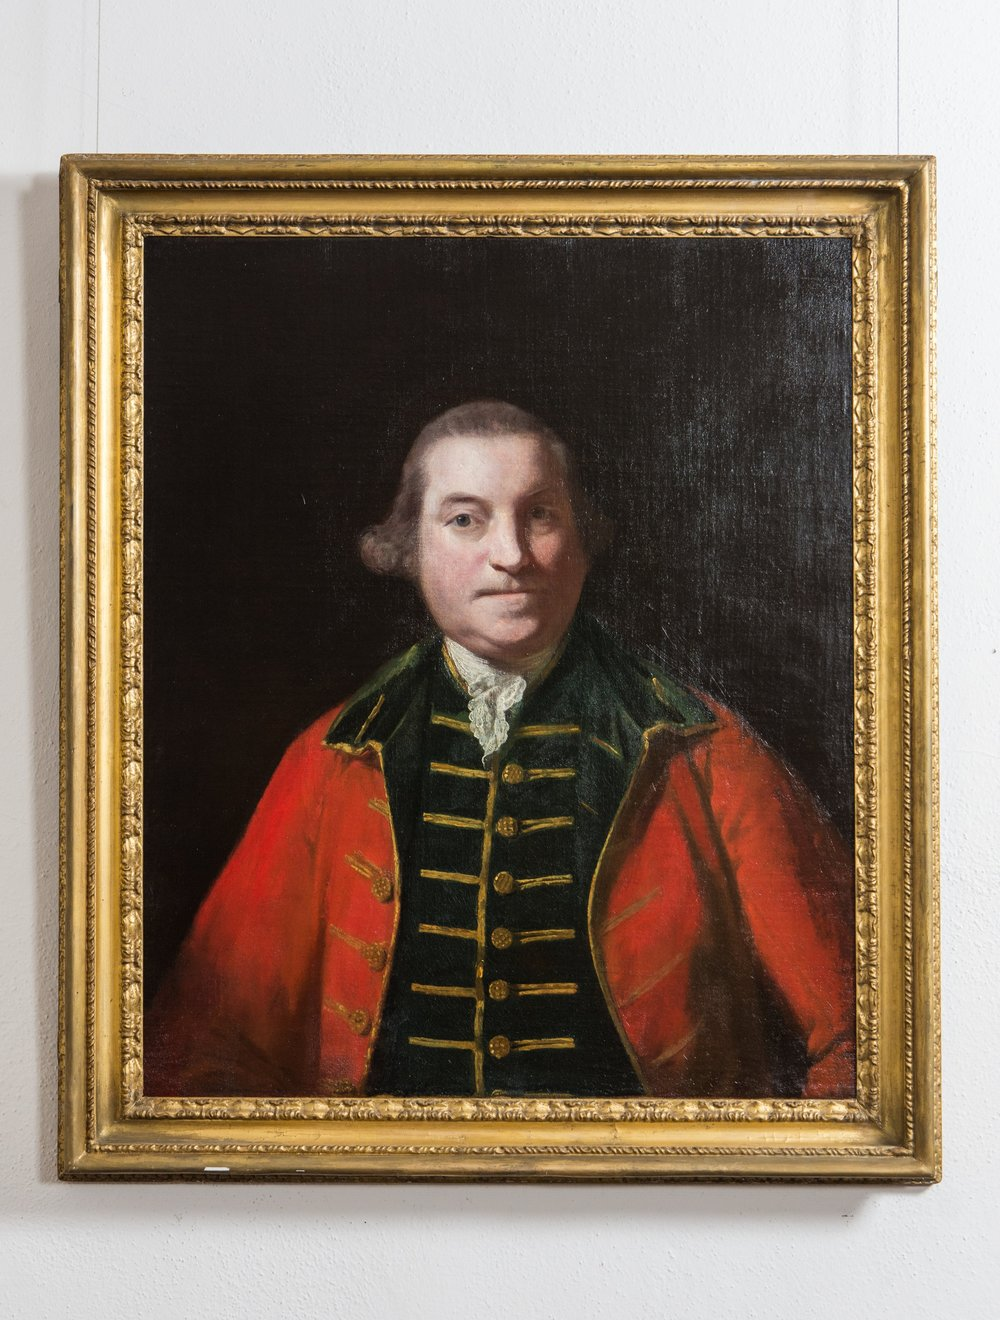 Portrait of a Military Officer in a Red Coat